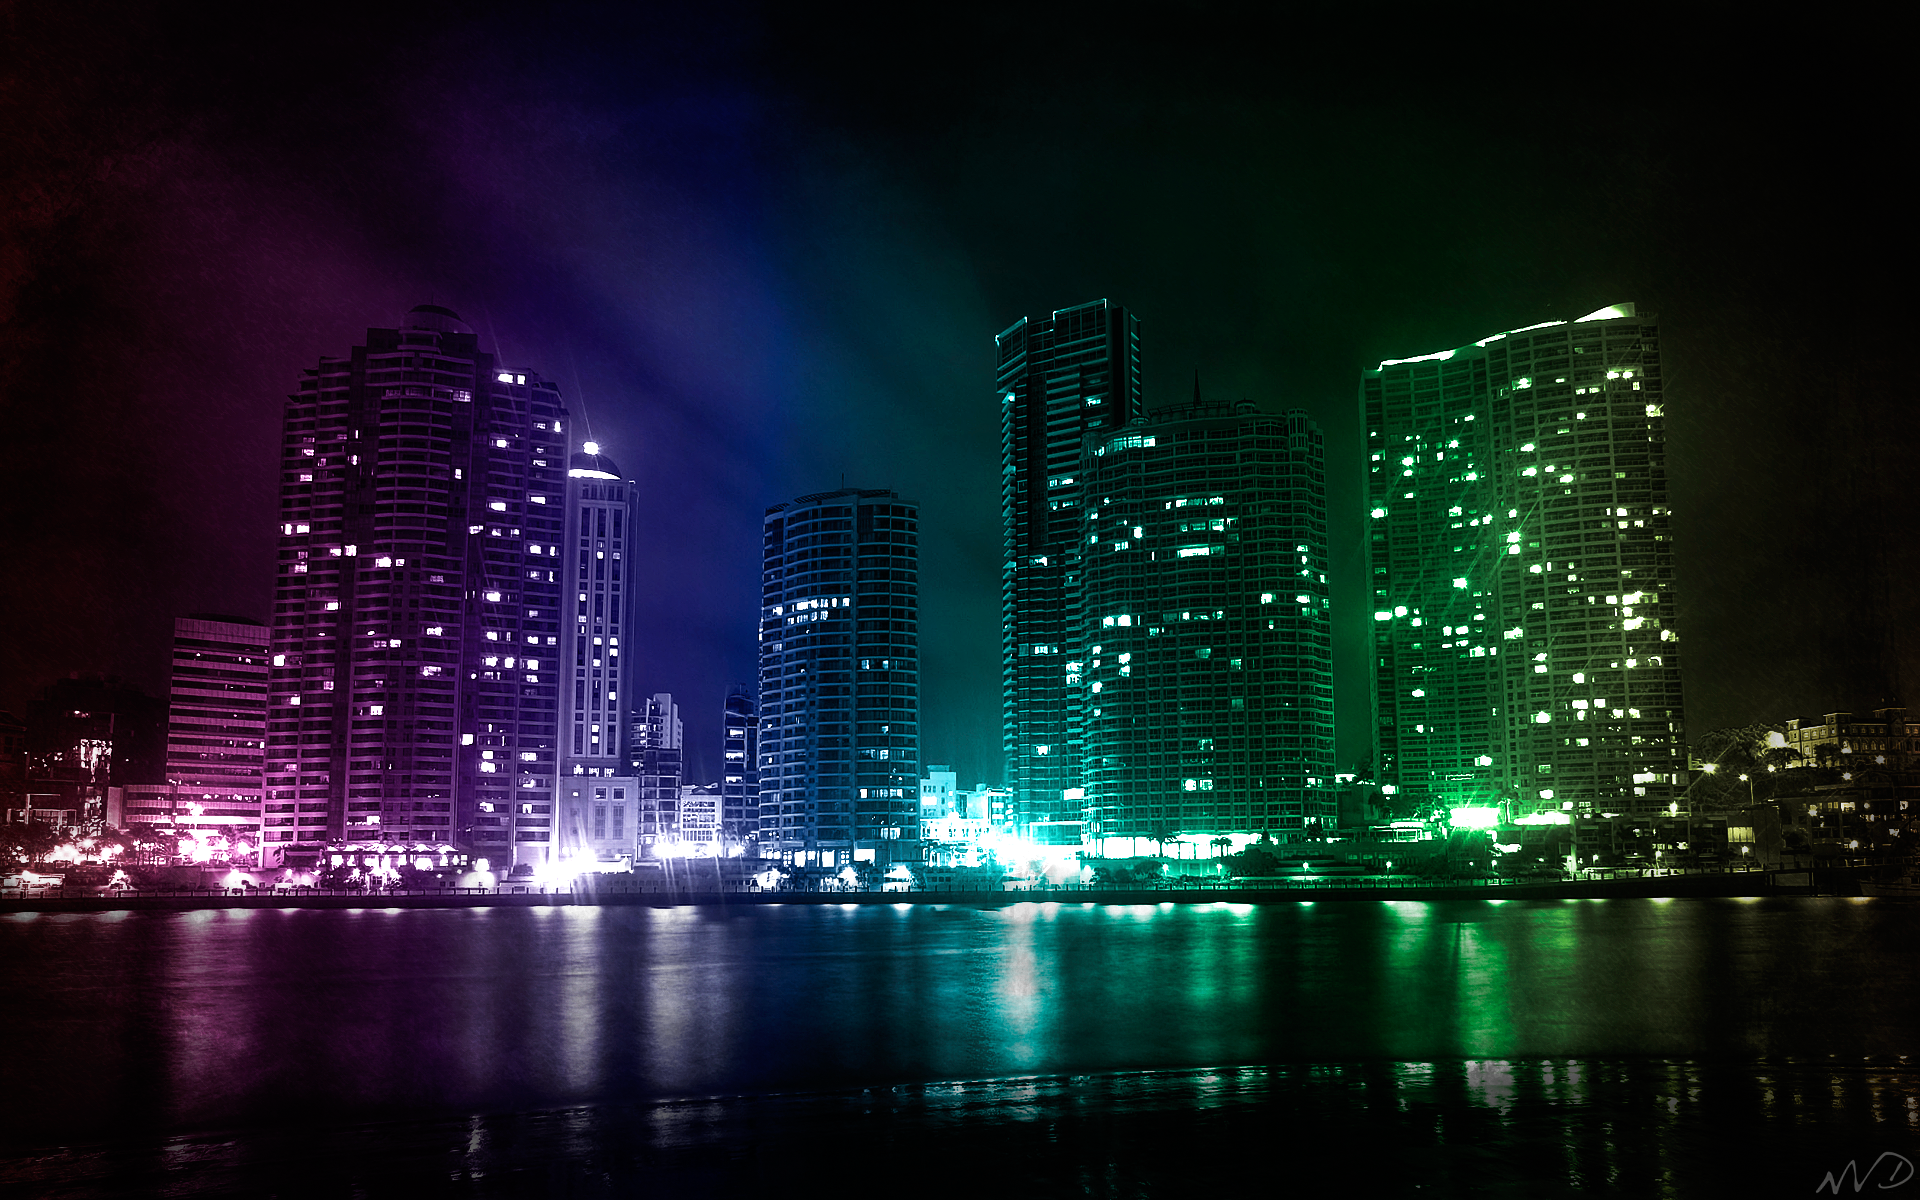 City HD Wallpaper Images For Desktop Download 1920x1200